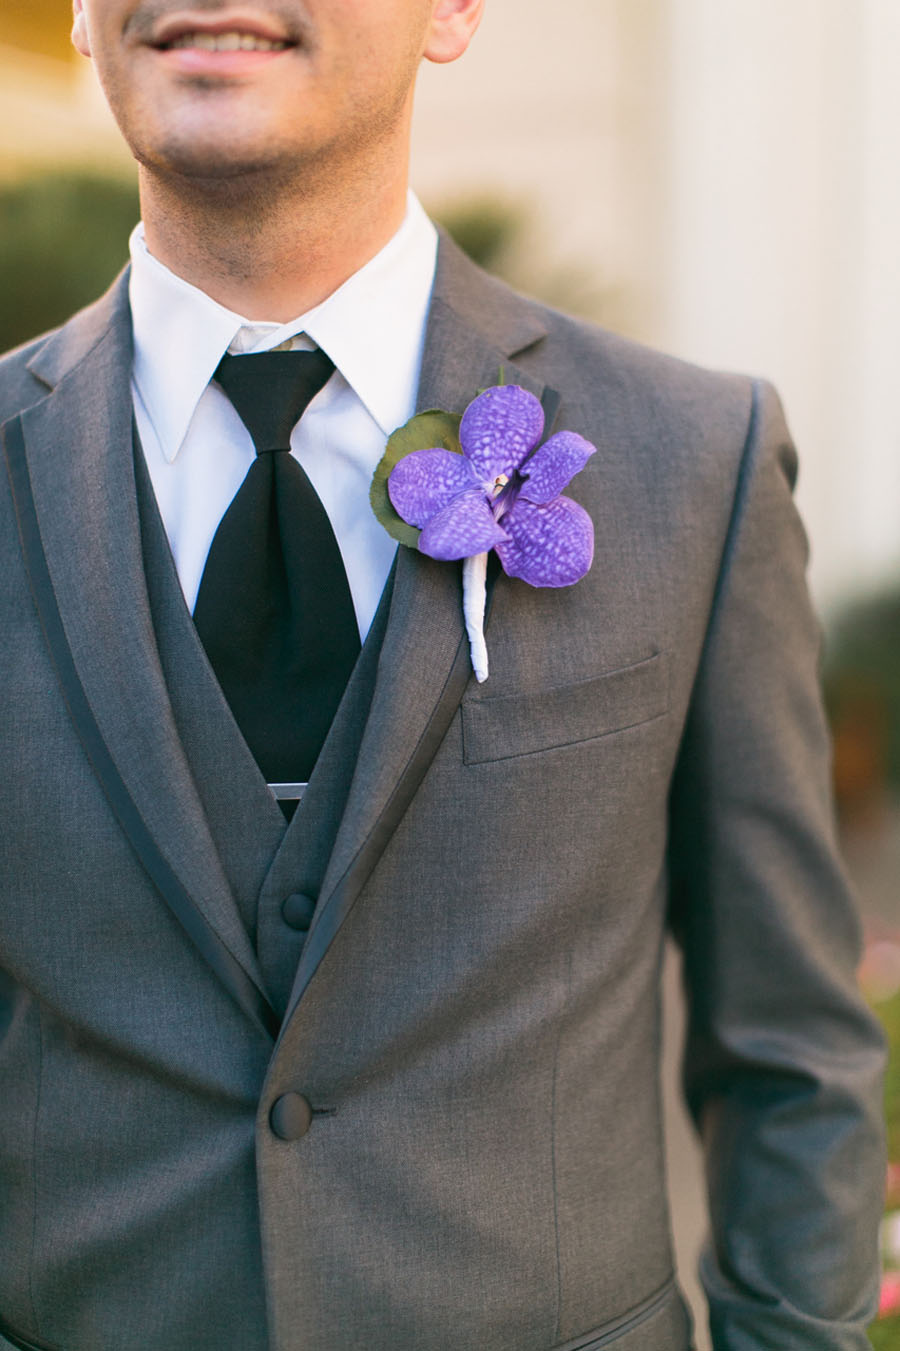 The Groom's grey Vera Wang tuxedo was accented with a deep purple orchid boutonniere.     Las Vegas Wedding Planner  Andrea Eppolito .  Wedding at  Four Seasons .  Photography by  Meg Ruth .  Floral and Decor by  Naakiti Floral .